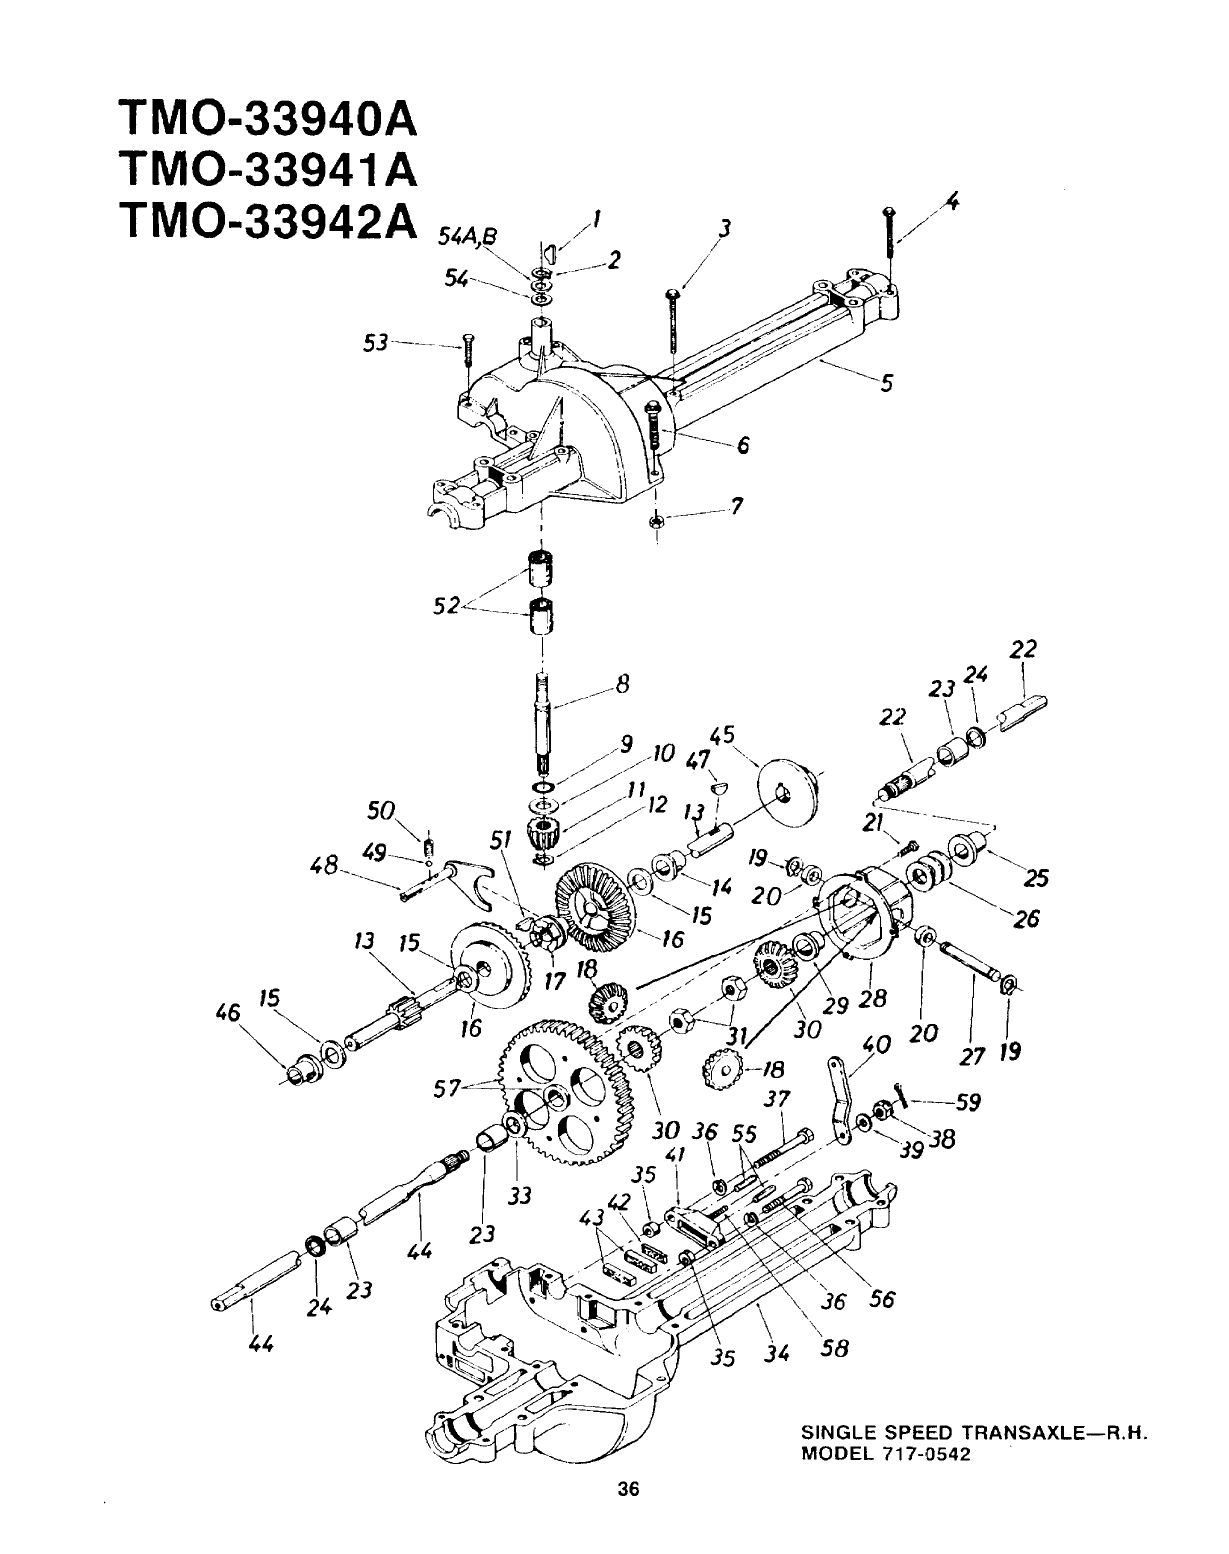 page 36 of montgomery ward lawn mower tmo 33940a user guide manualsonline